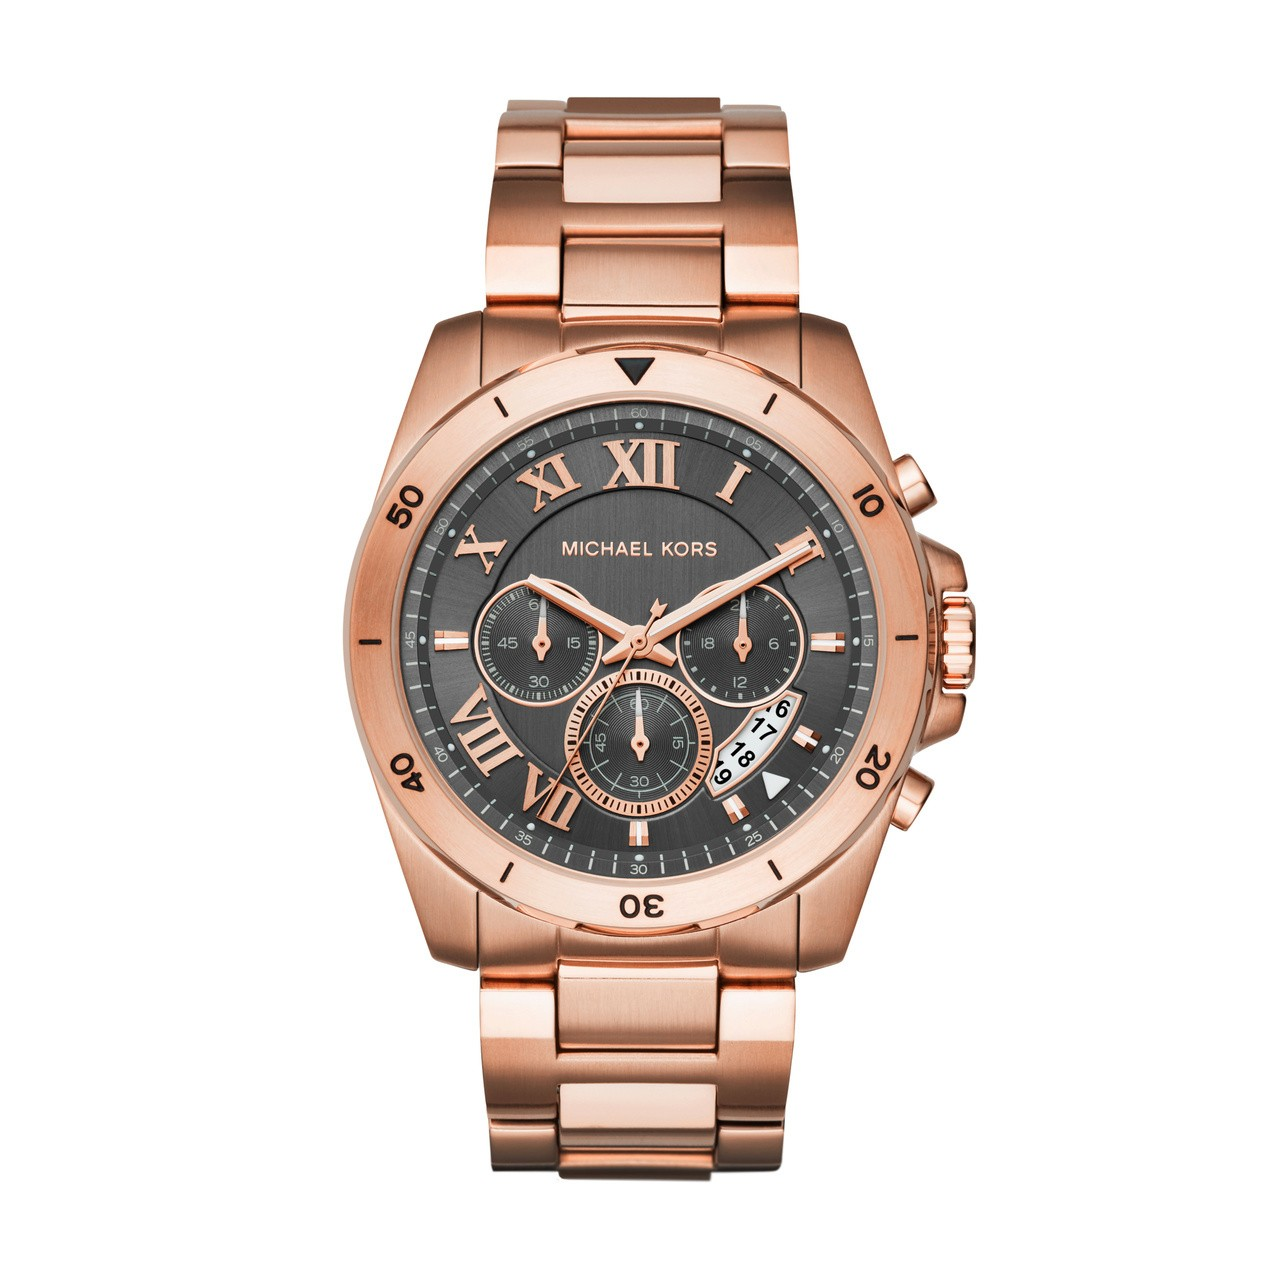 8c76b66fd3e9 Michael Kors Mens Chronograph Rose Gold Brecken Watch MK8563